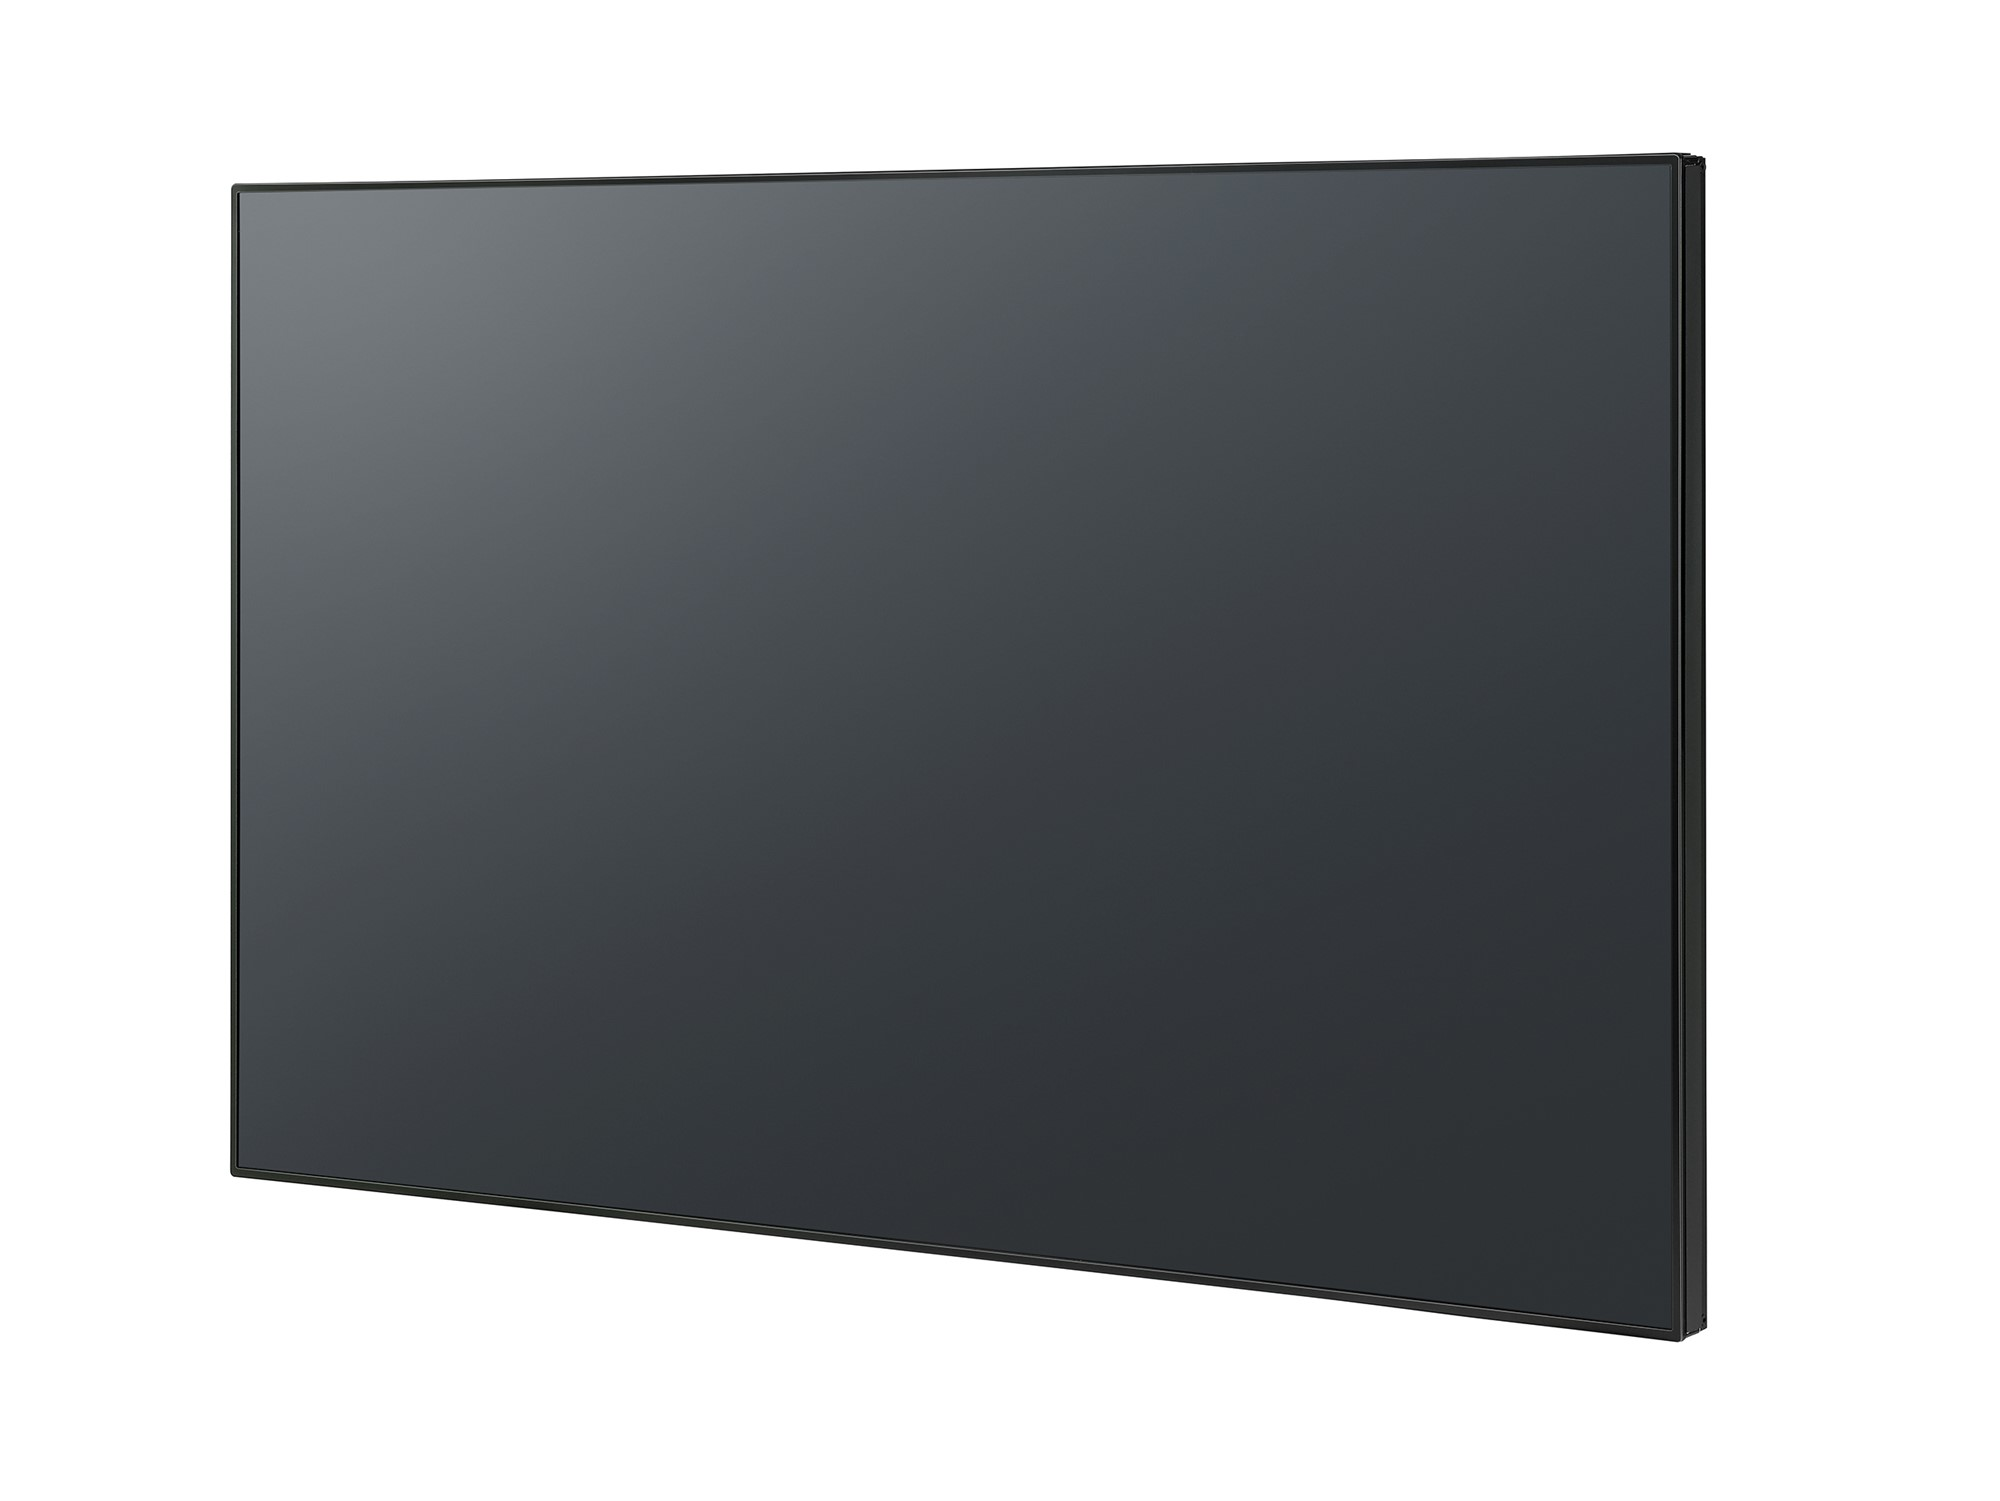 PANASONIC TH-49AF1 DIGITAL SIGNAGE FLAT PANEL 49